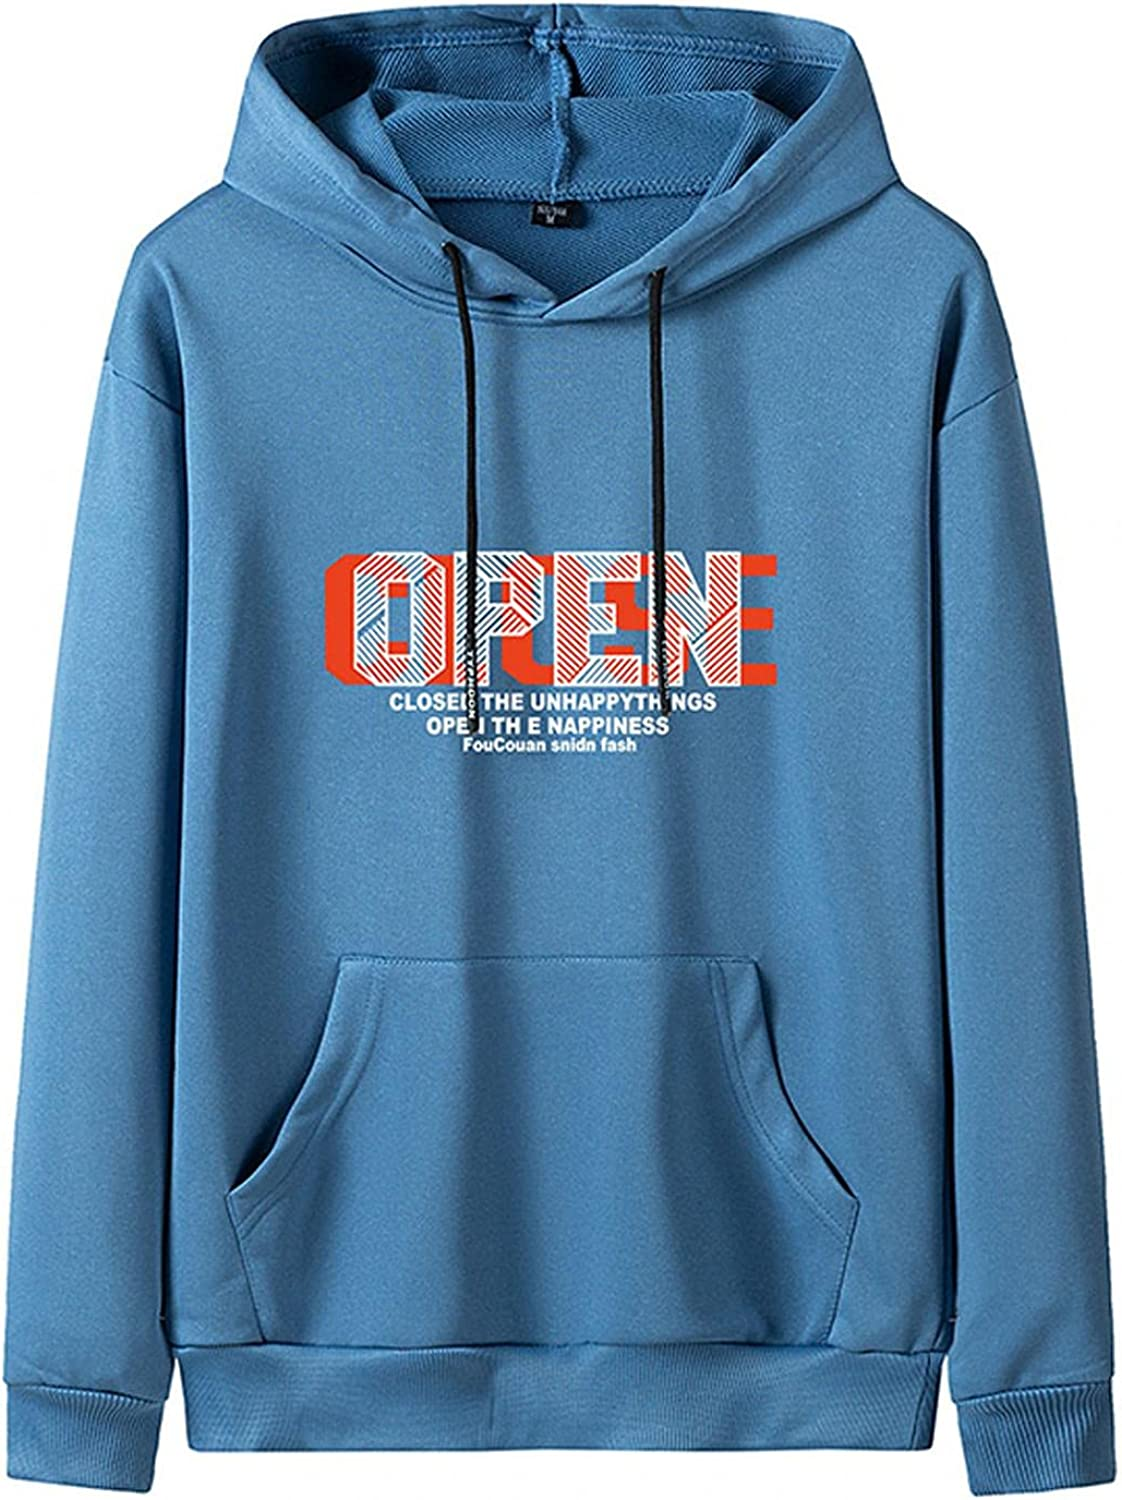 Huangse Open The Happiness Men's Hoodie Letter Print Casual Loose Fit Pullover for Men Hip Hop Street Trend Sweatshirt